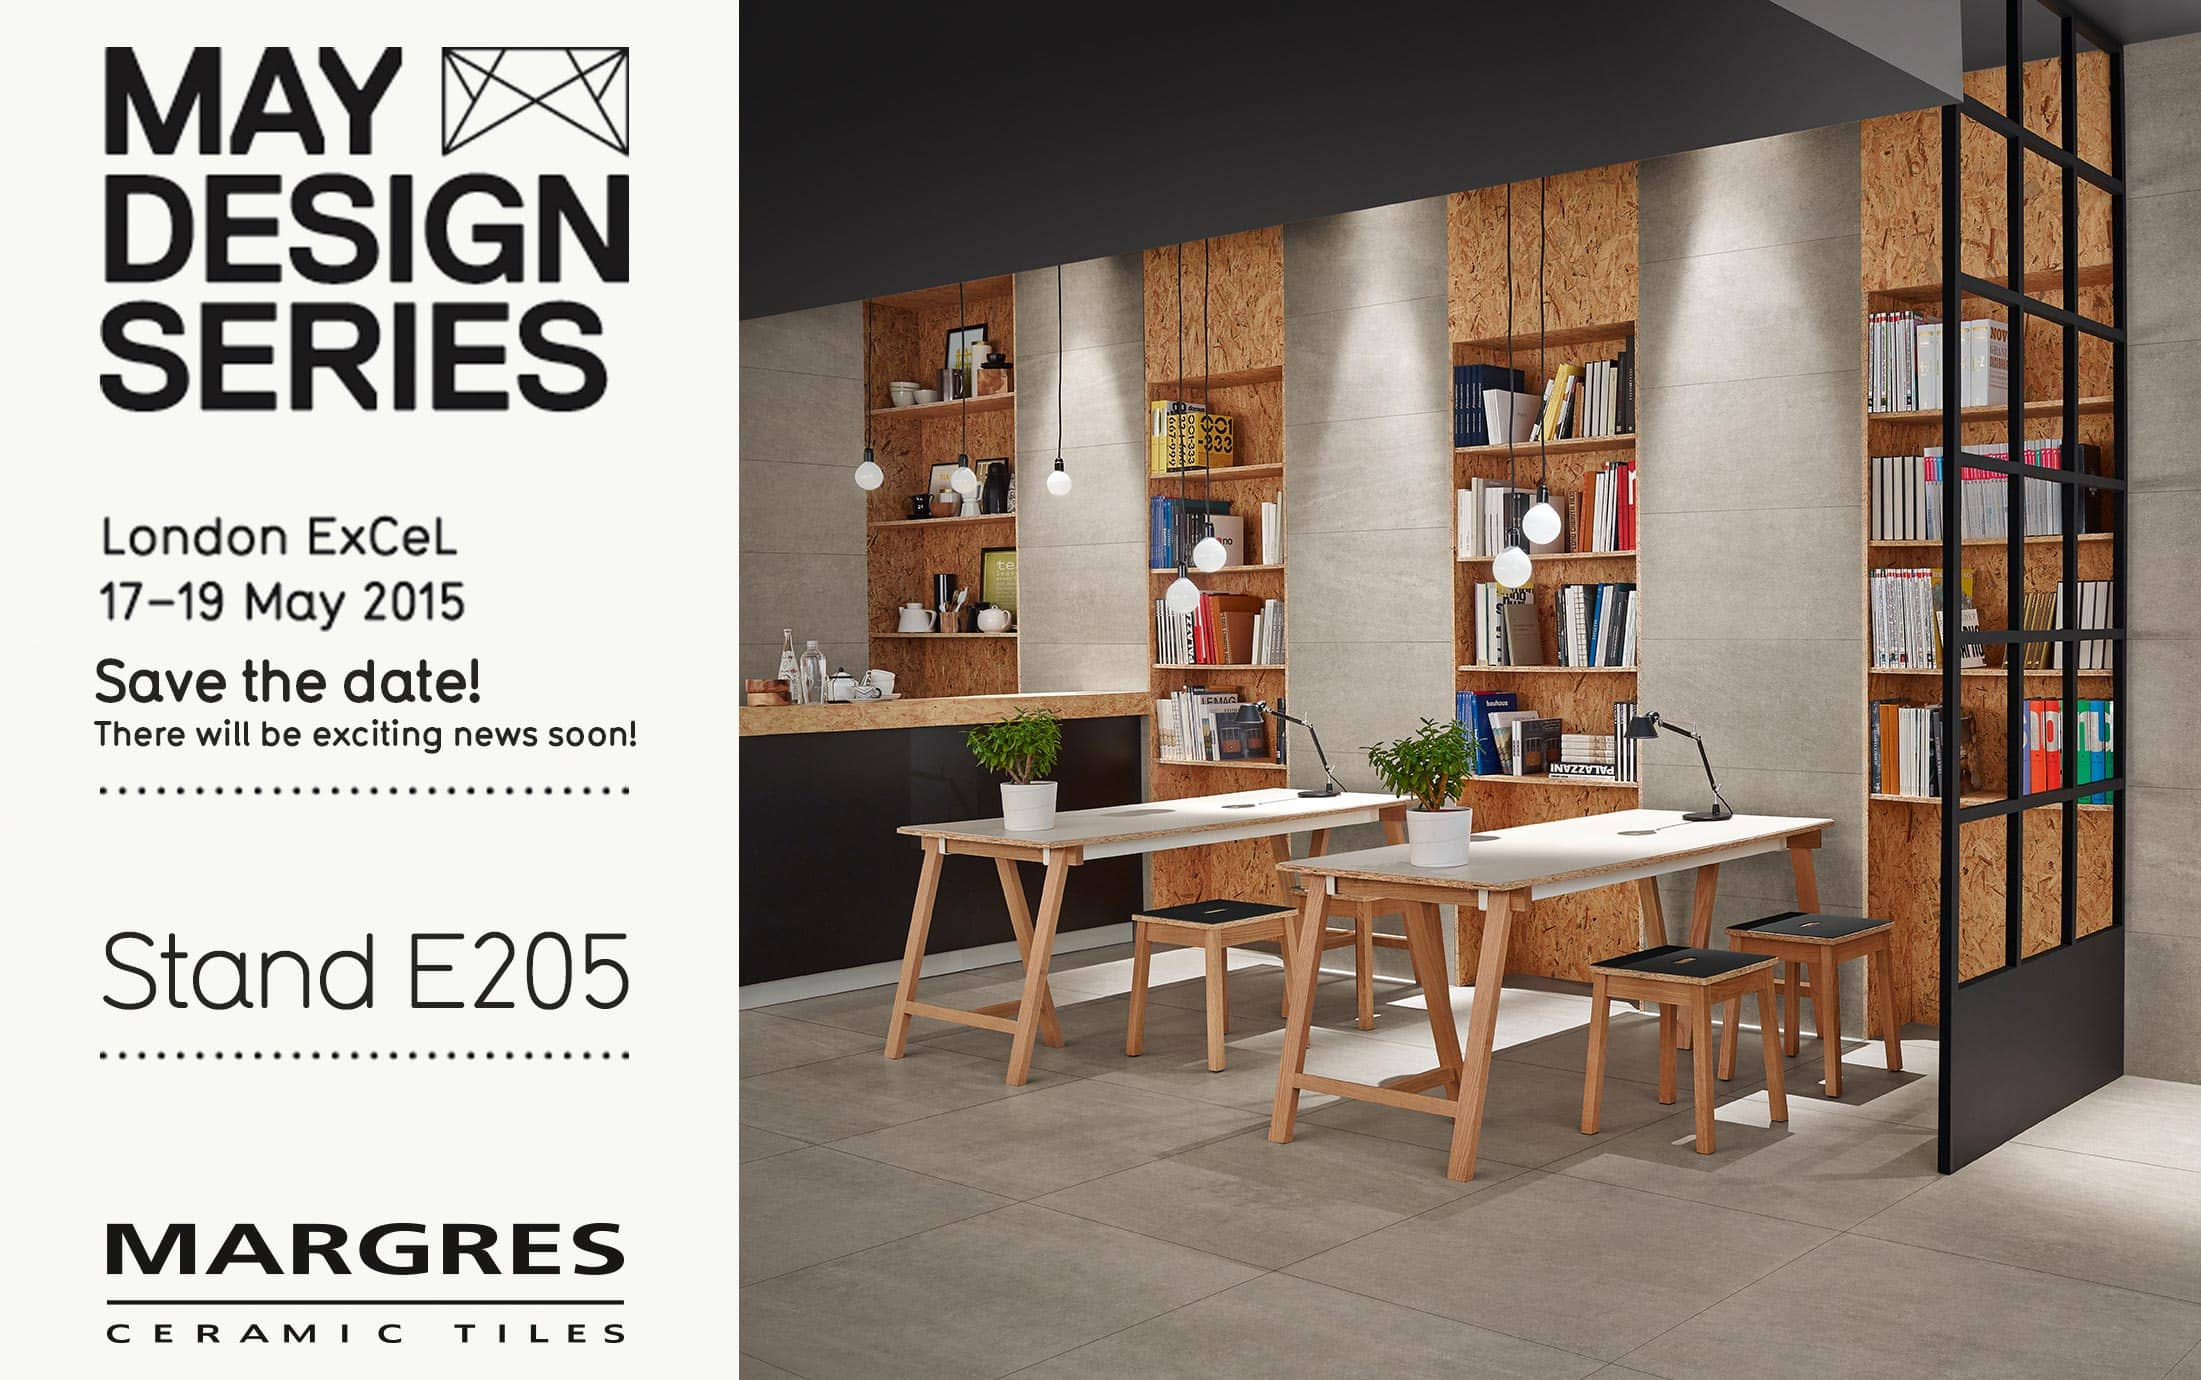 Margres at May Design Series